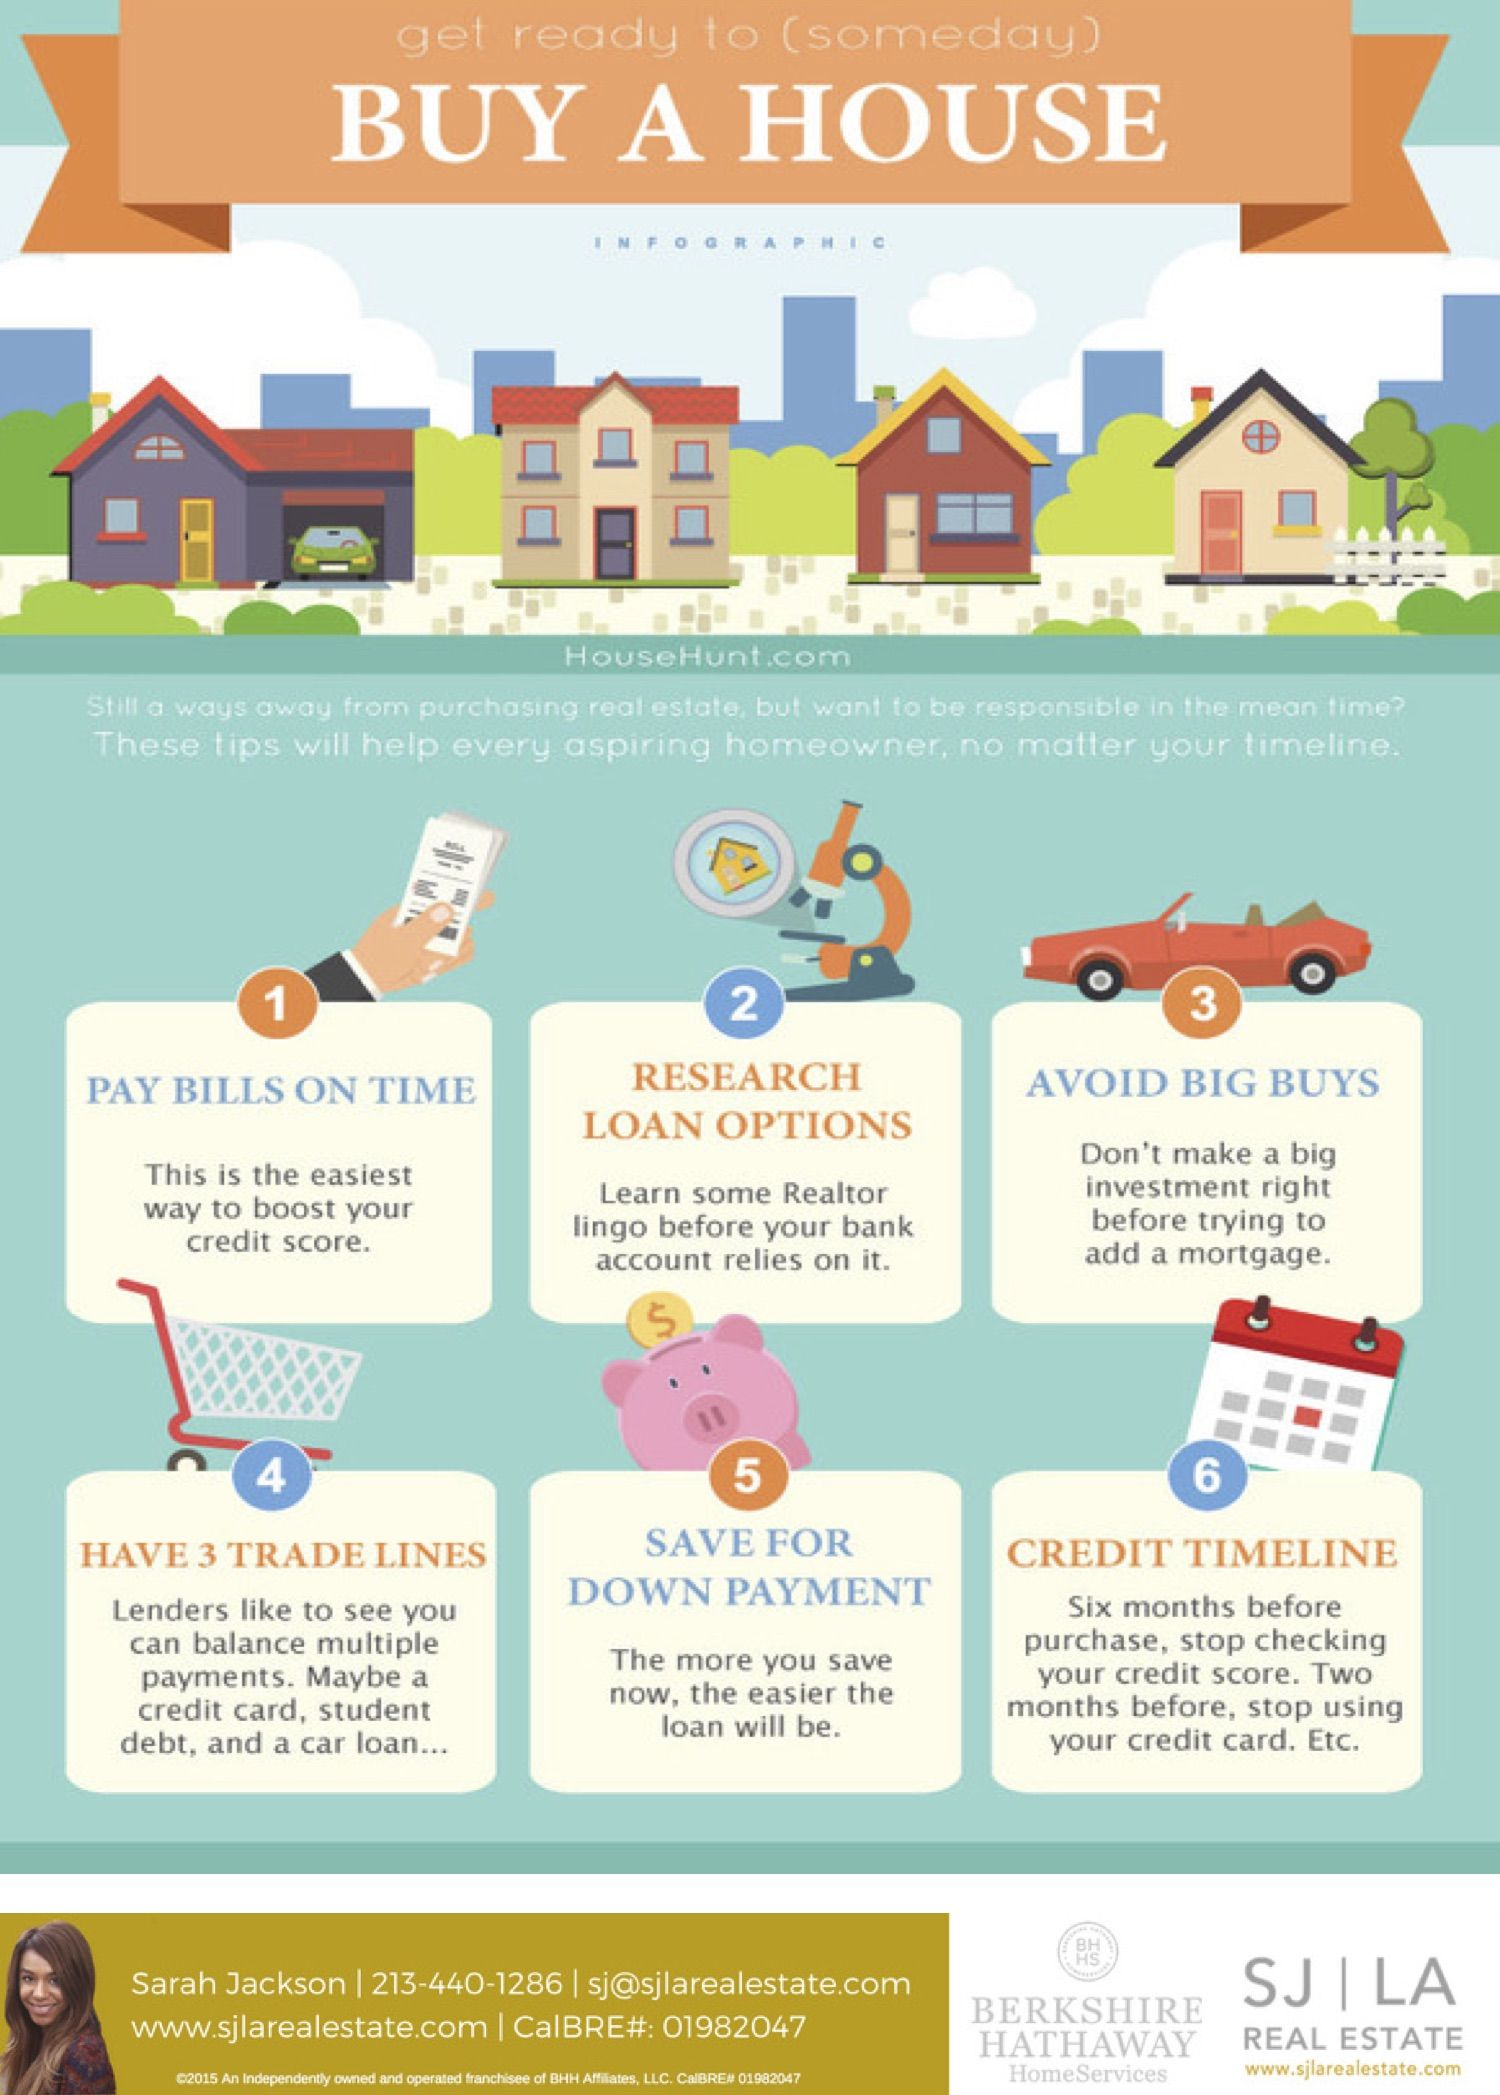 Get Ready To Someday Buy A Home Buying First Home Home Buying Process Buying Your First Home